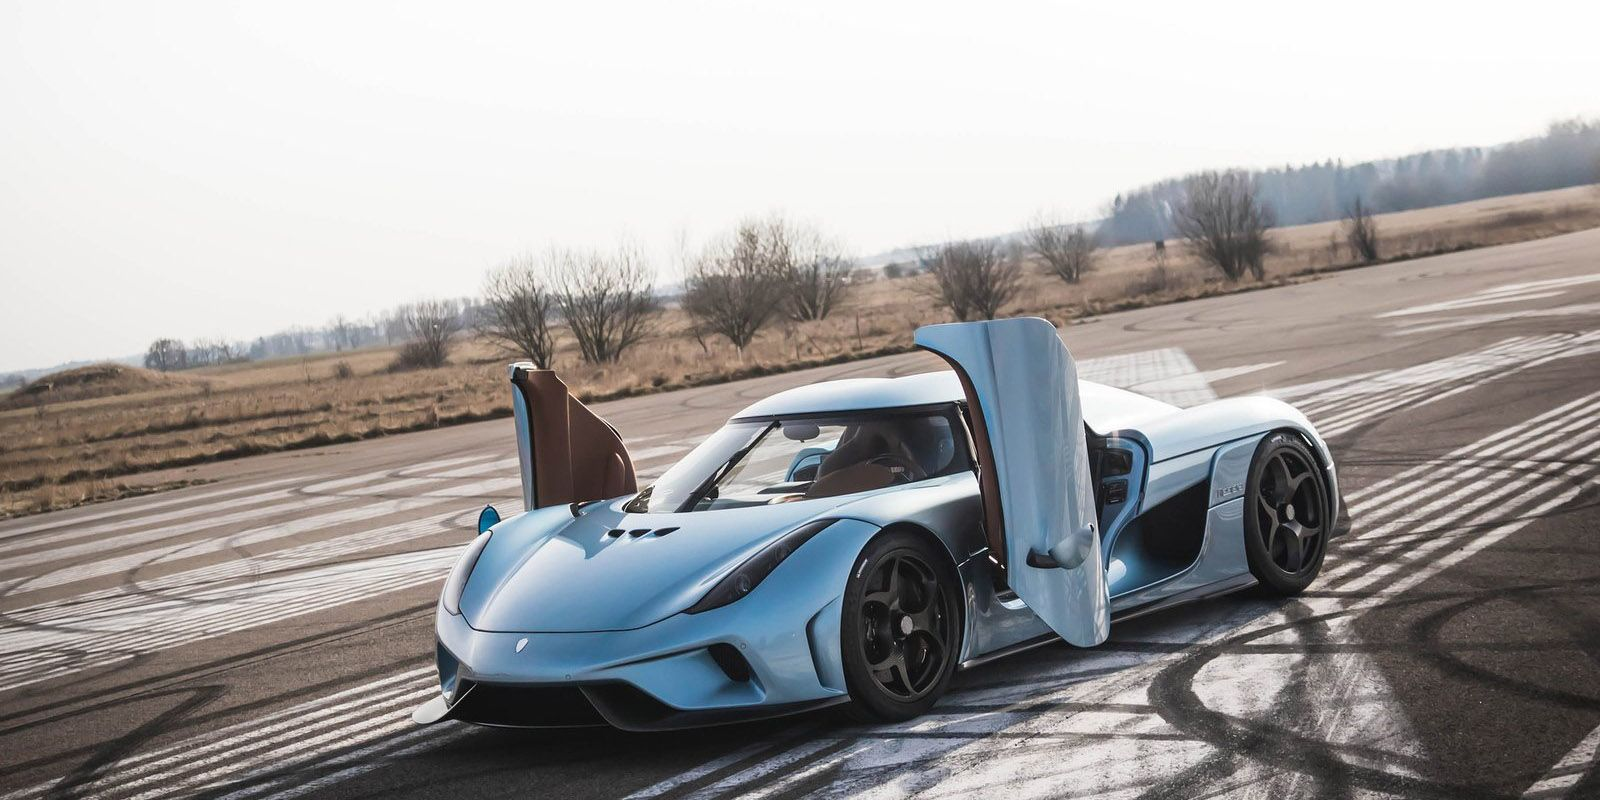 Perhaps the most fascinating upcoming hypercar is the Koenigsegg Regera because it has no gearbox. Instead, the 5.0 liter twin-turbo V8 sends 1100 bhp to three electric motors. The first is attached to the front of the crankshaft and drives power to both the battery and the two motors that drive the rear wheels. The Regera has a full-electric range of about 22 miles and a total power output of 1,500 bhp. The car utilizes regenerative braking to cut down the charge time.